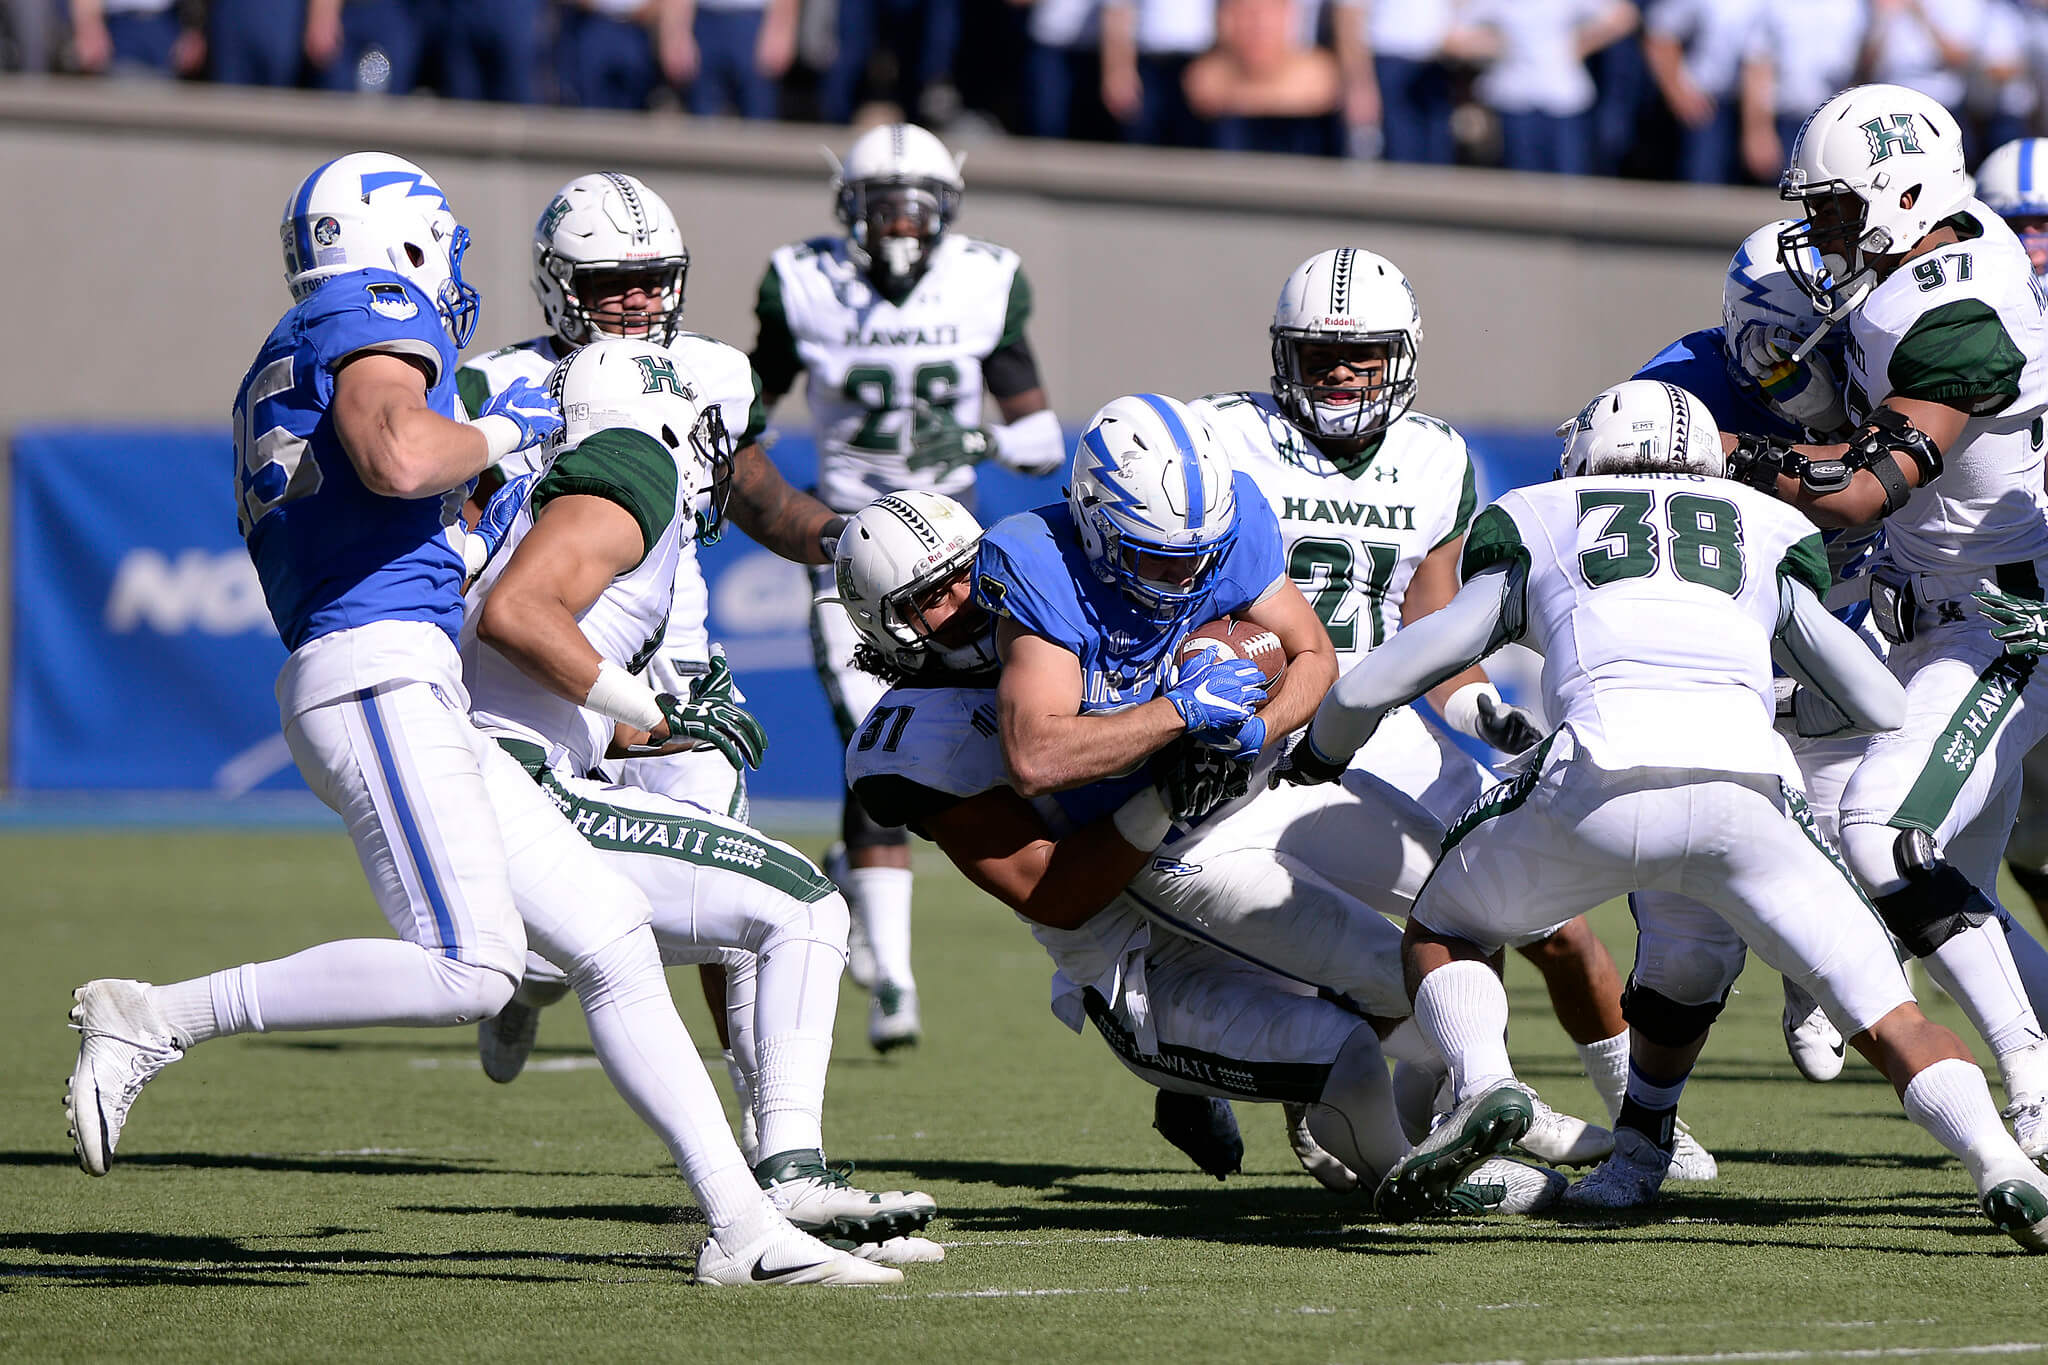 Air Force vs Hawaii Kuter Trophy rivalry